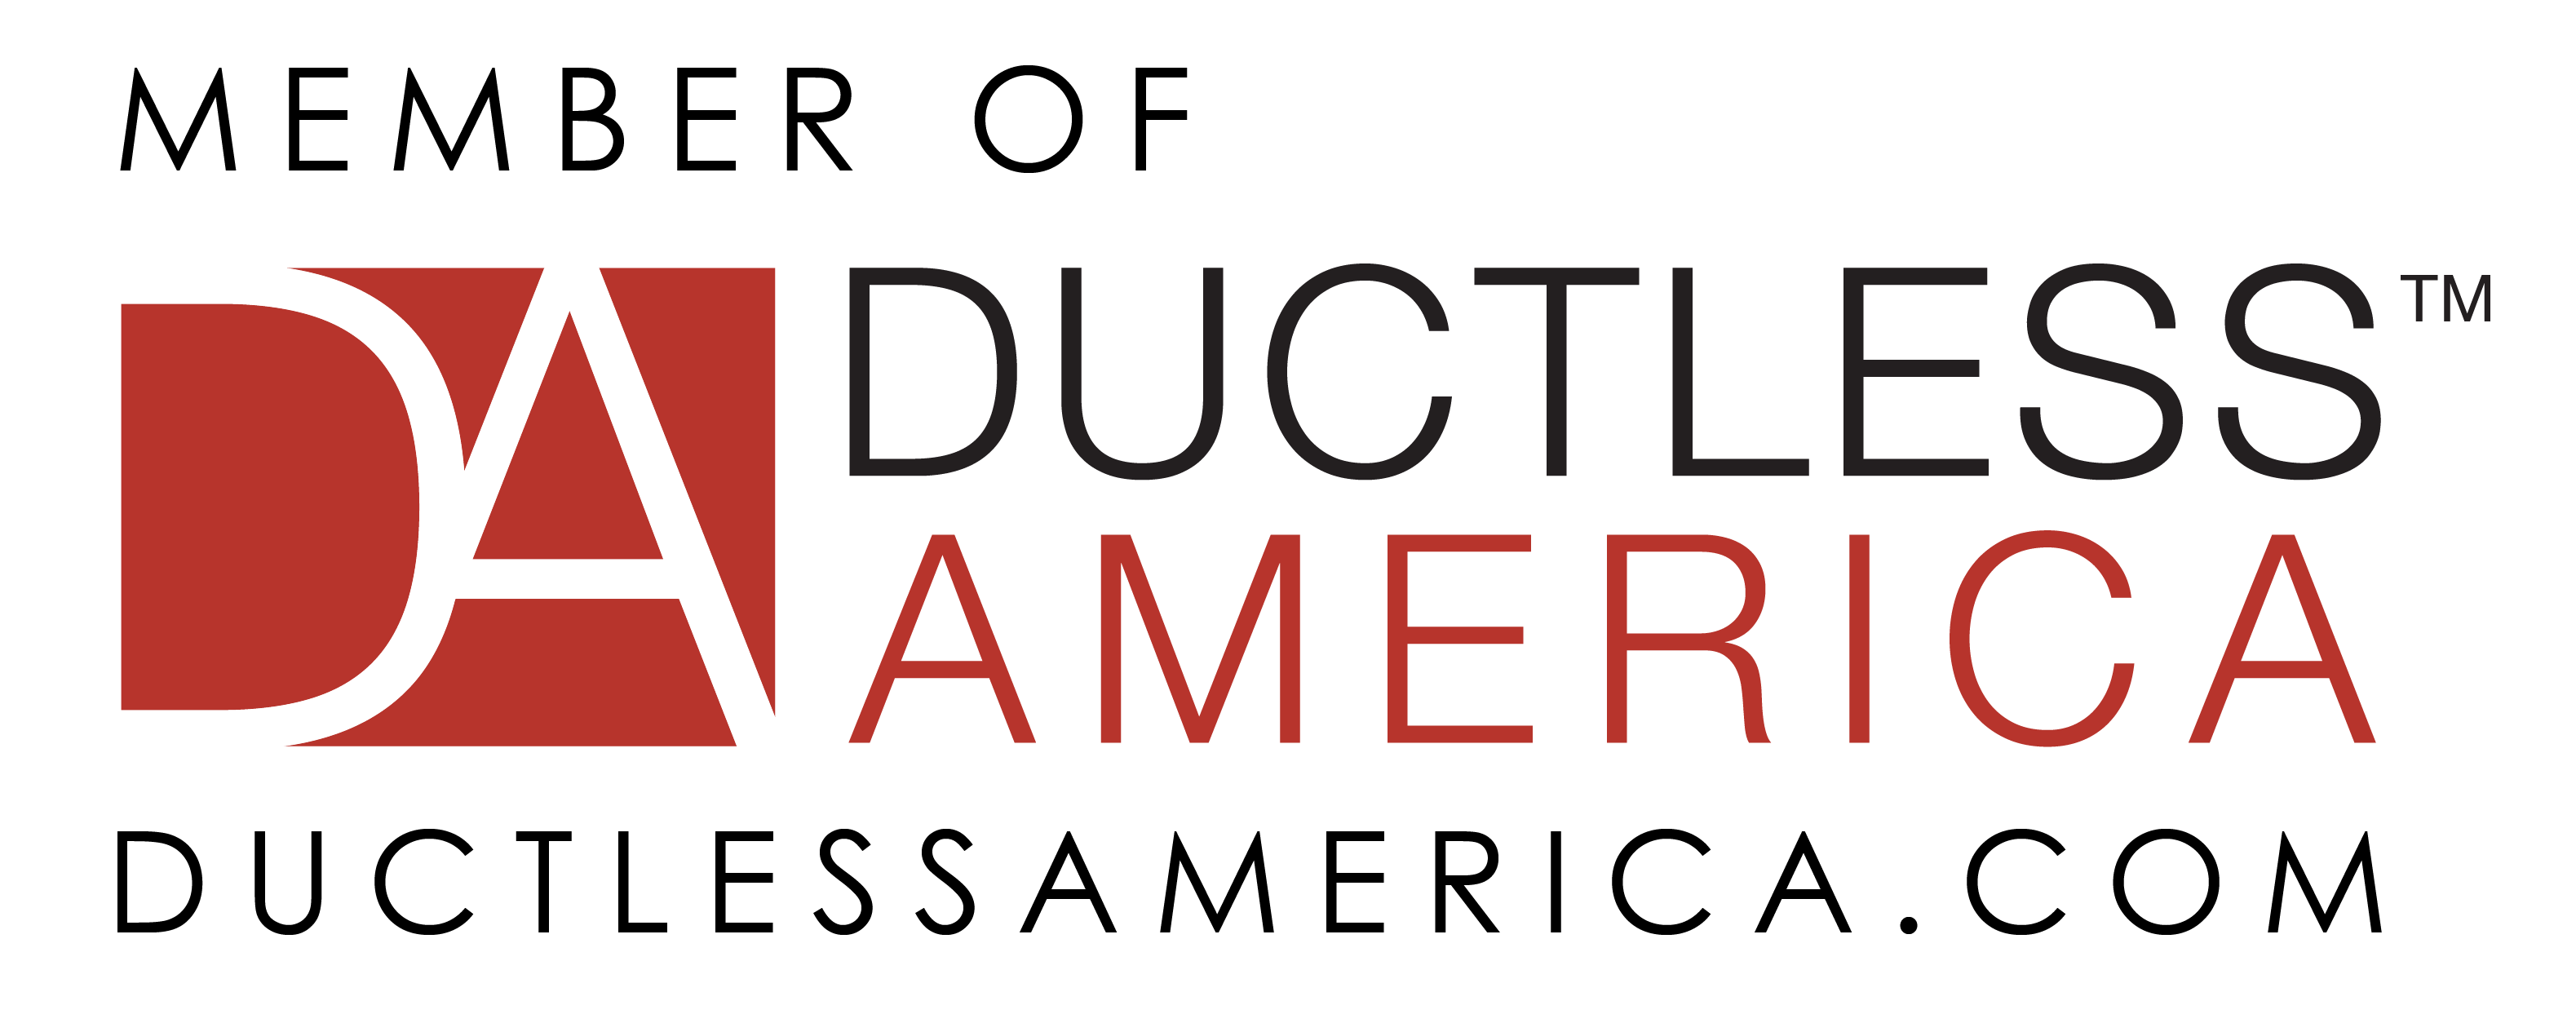 Member of Ductless America